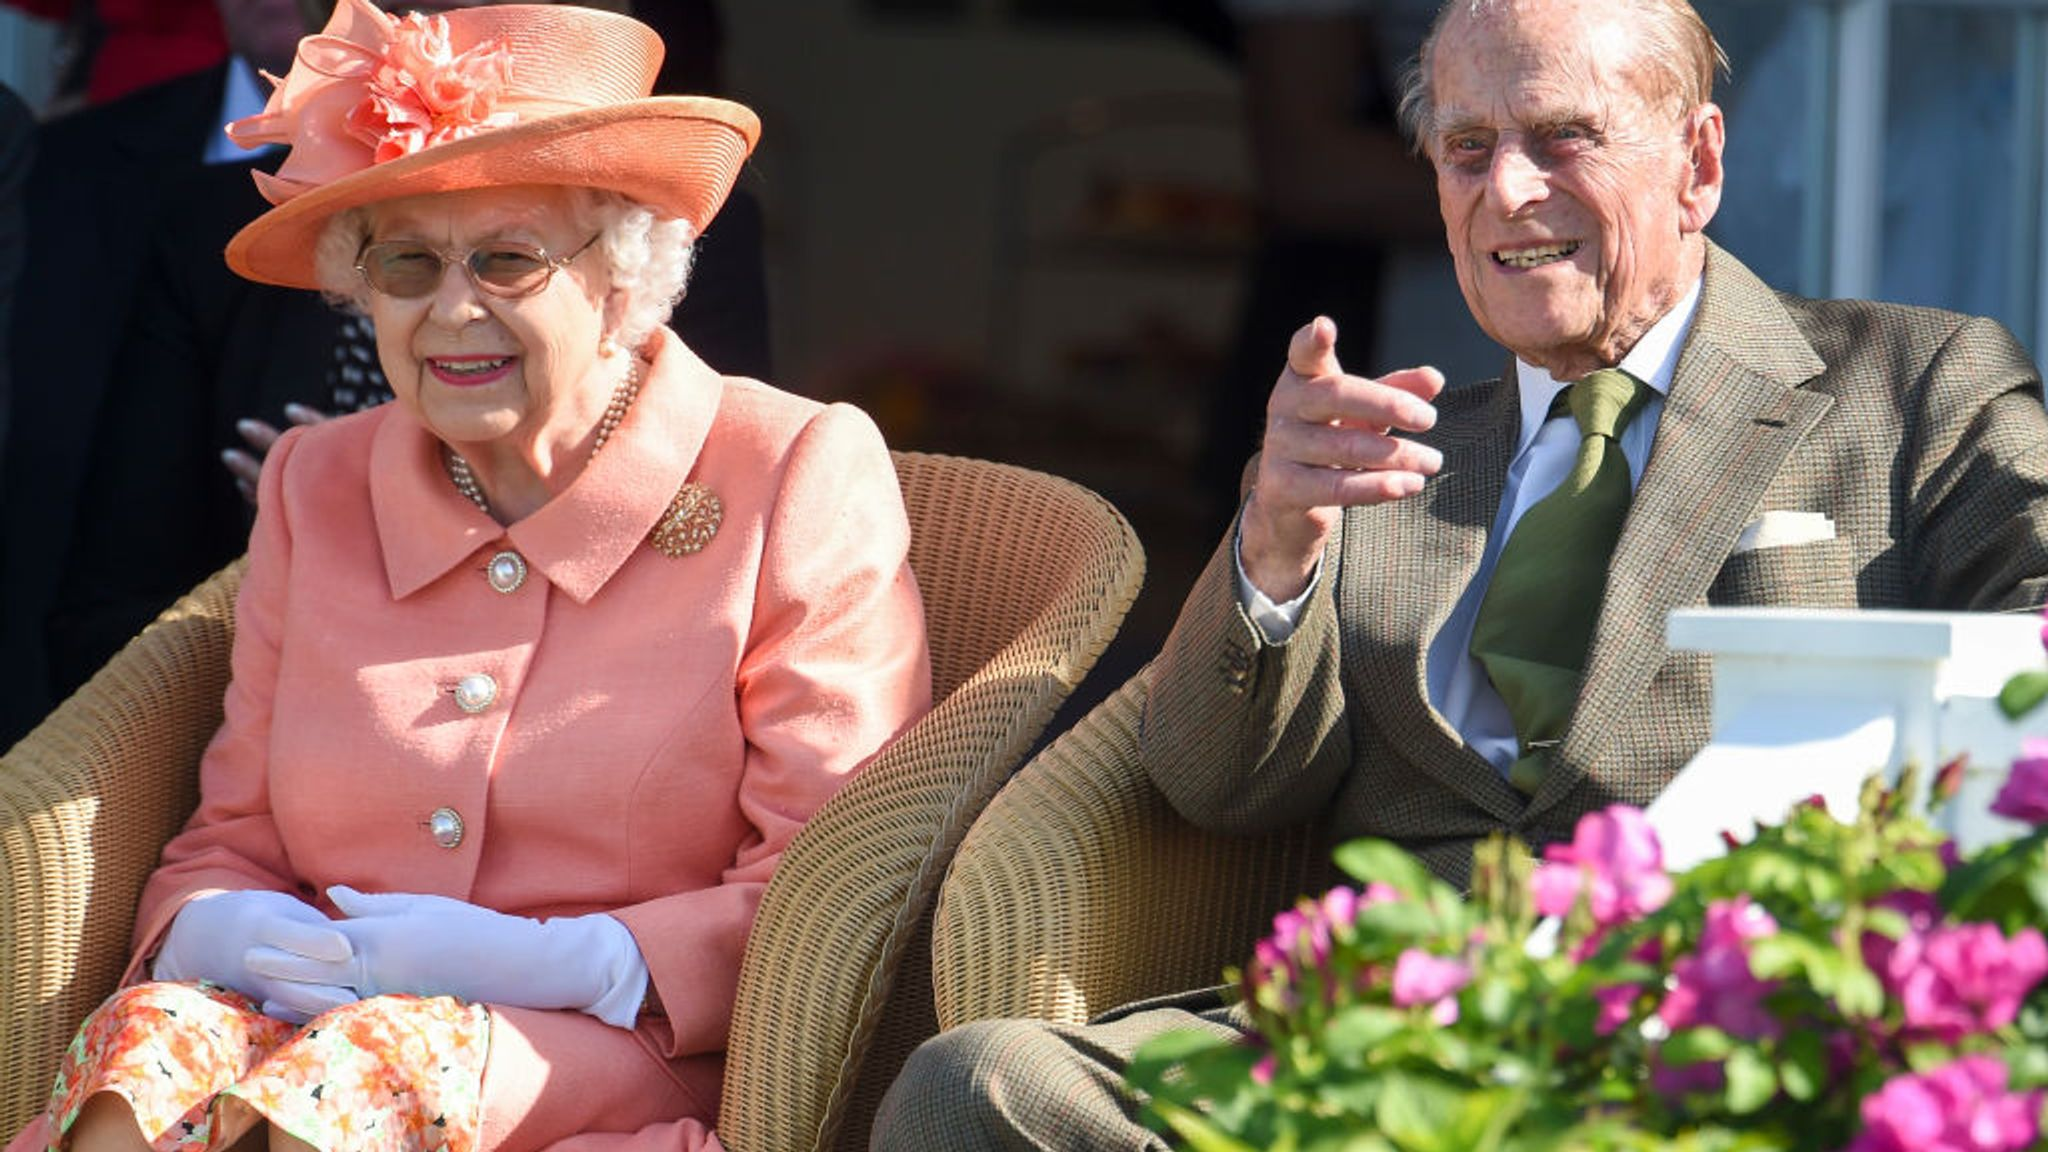 The Queen, left, will turn 95 in 2021 while her husband Philip, right, will turn 100